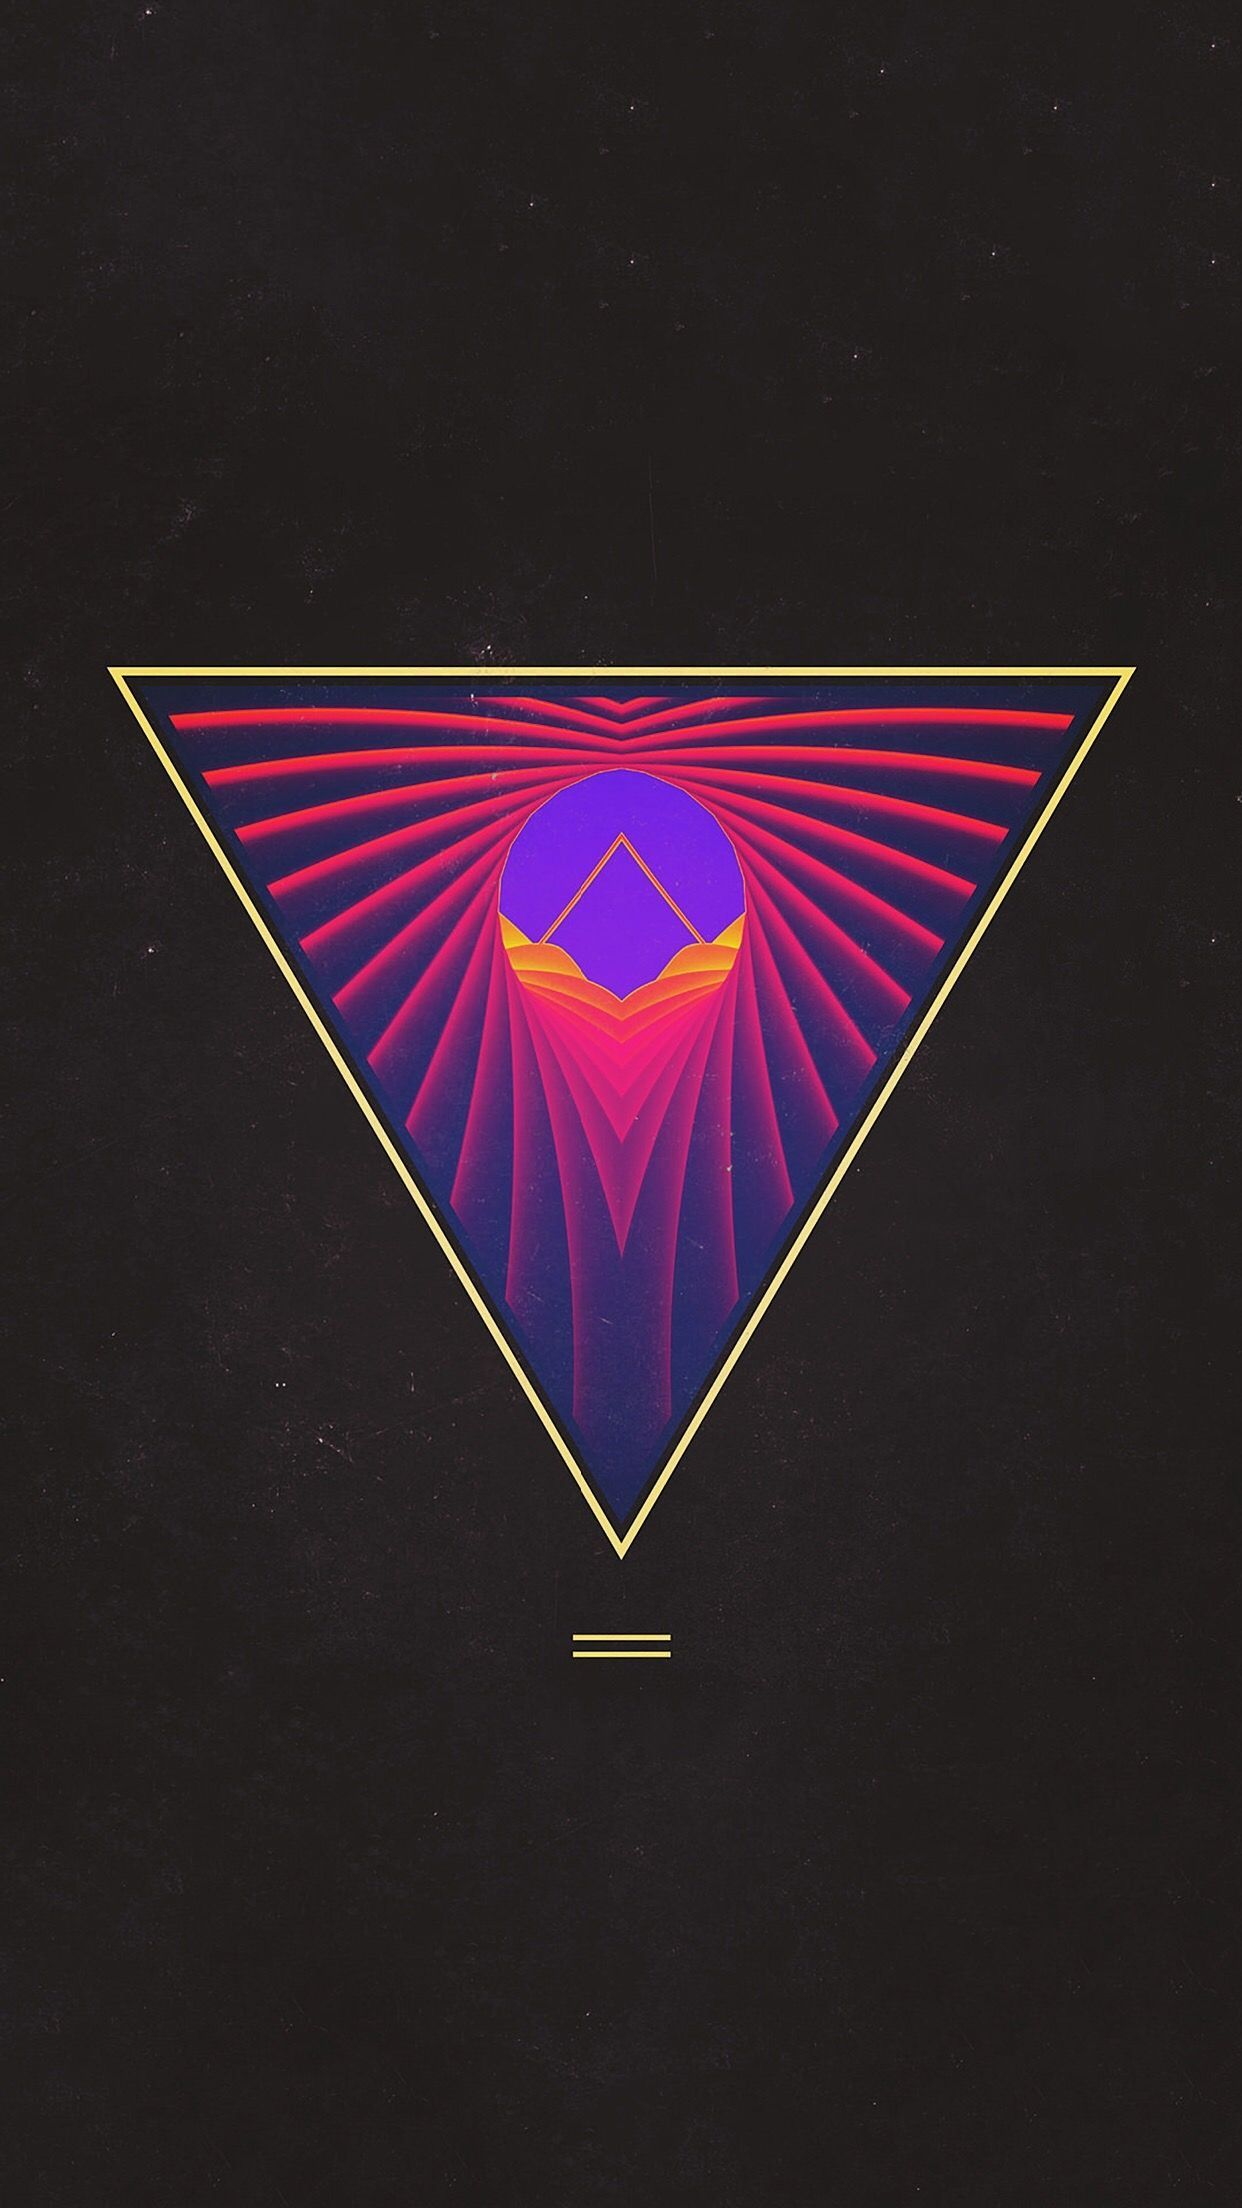 Dope Triangle Wallpapers - Top Free Dope Triangle ...